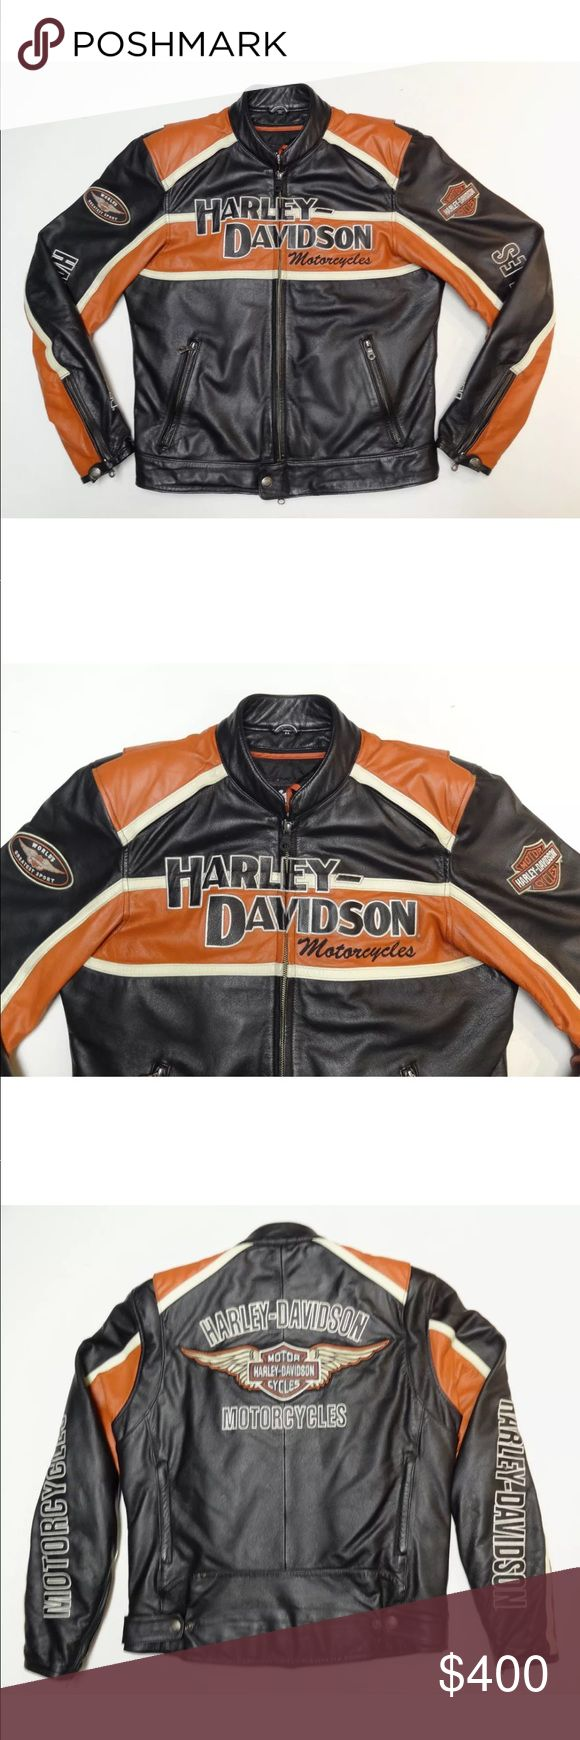 Harley Davidson Leather Jacket Harley Davidson Classic Cruiser Leather Jacket Size Small with winged Bar & Shield logo across the back.Classic Style.It's in excellent condition. Comes with removable zip-out liner. Body armor at shoulders and elbows is also included! Harley-Davidson Jackets & Coats